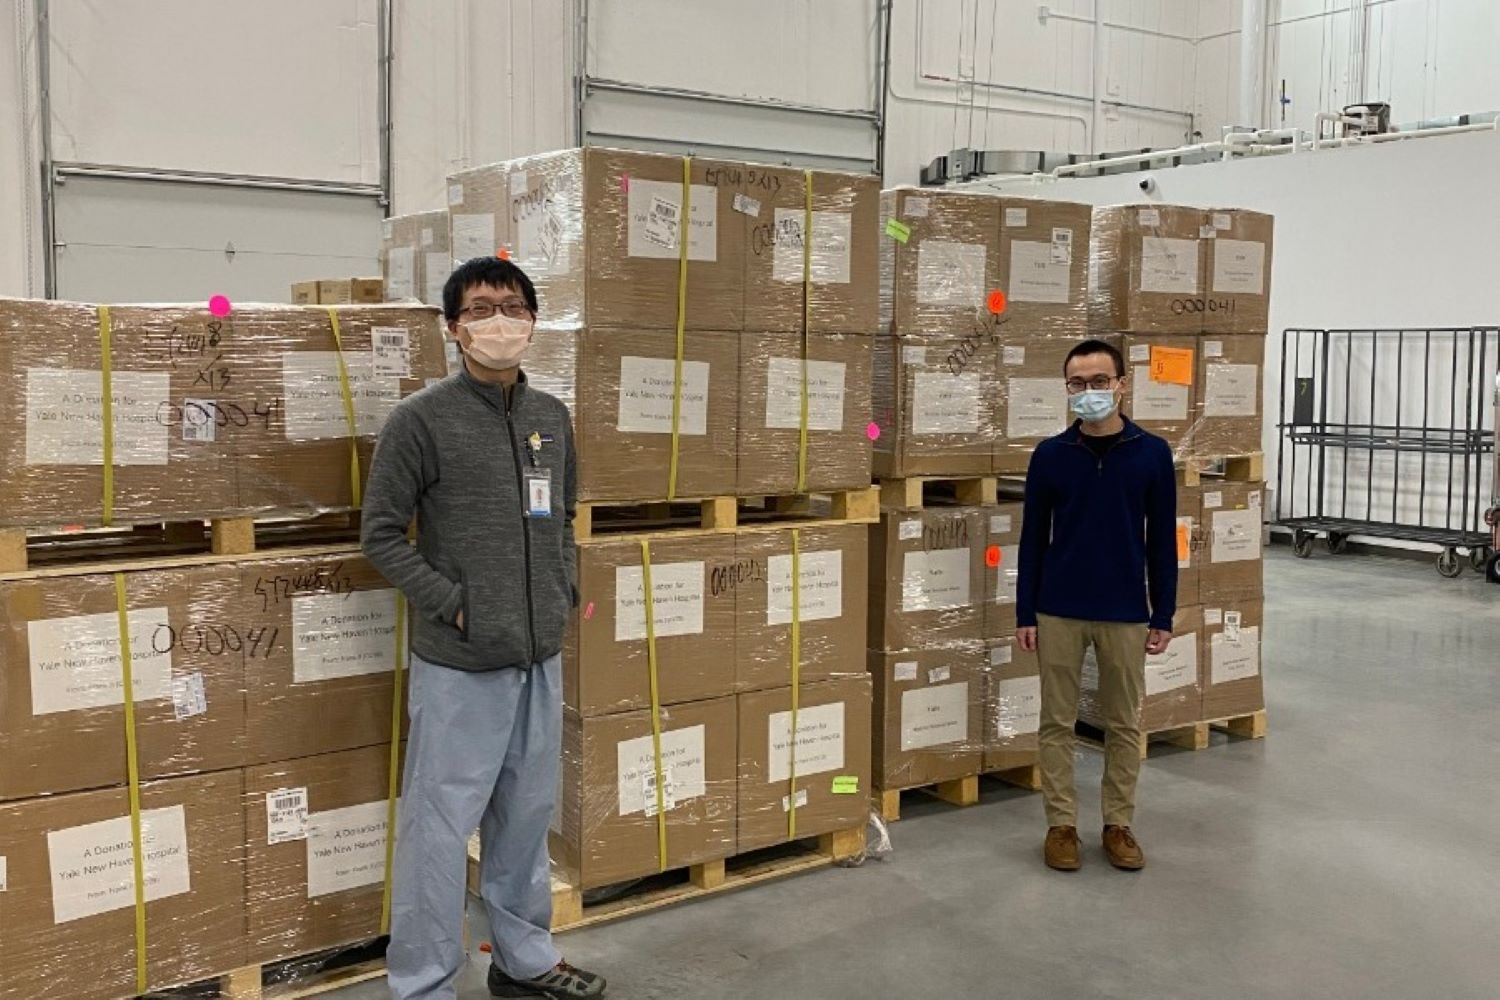 Delivery of nearly 200,000 pieces of personal protection equipment